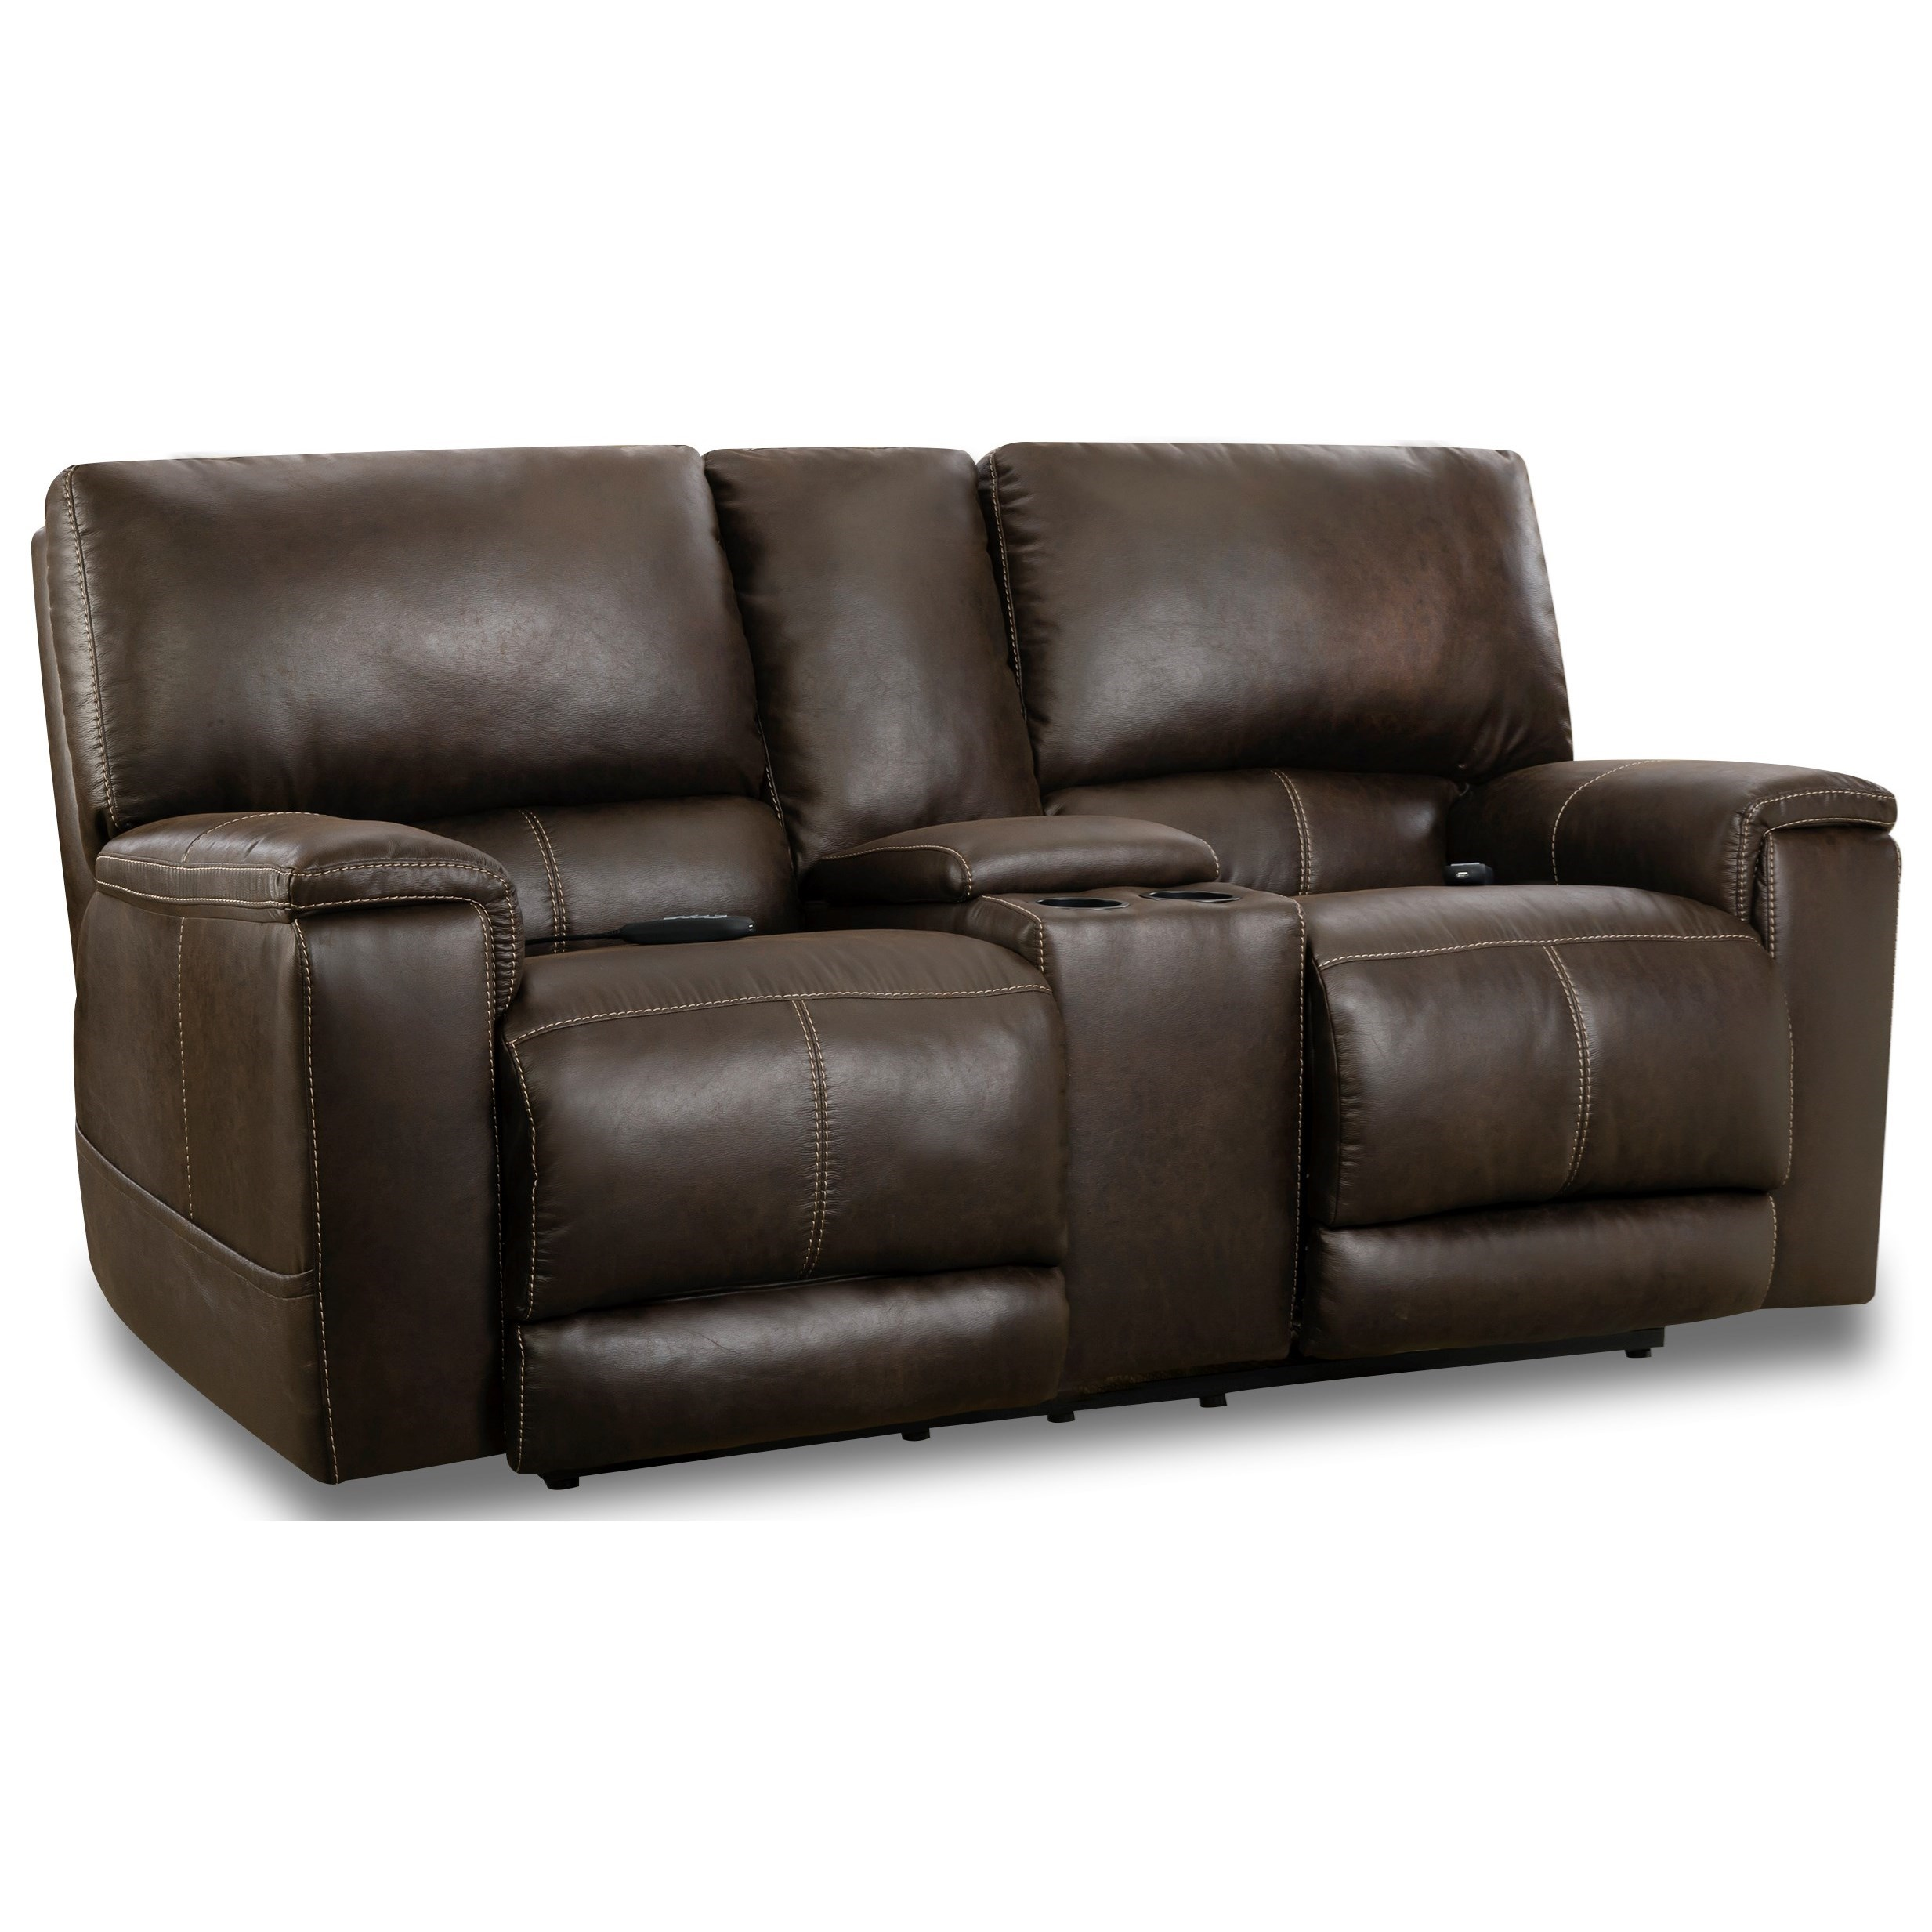 197 Collection Power Reclining Loveseat by HomeStretch at Gill Brothers Furniture